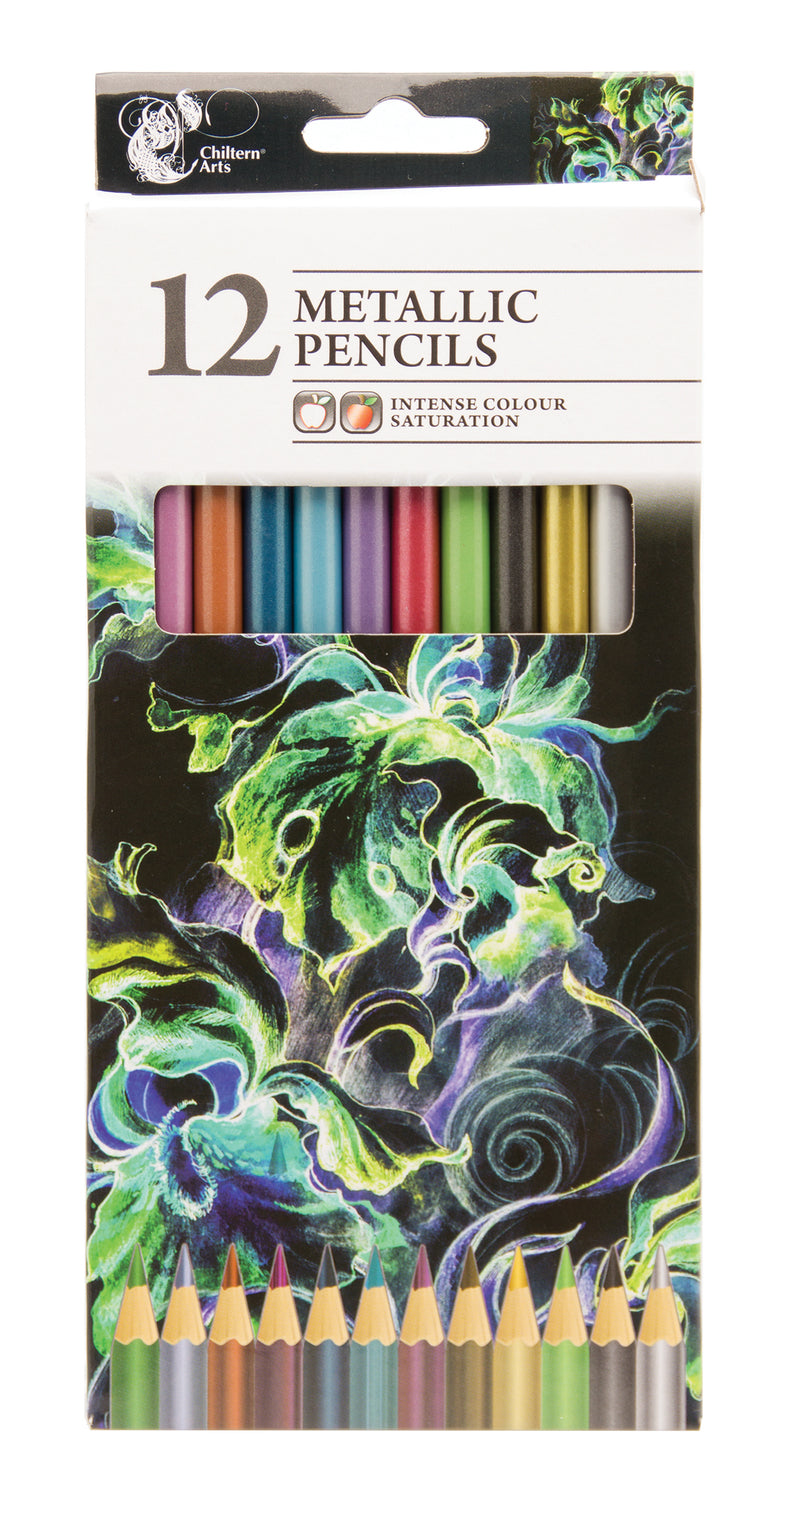 Metallic Pencils 12pk